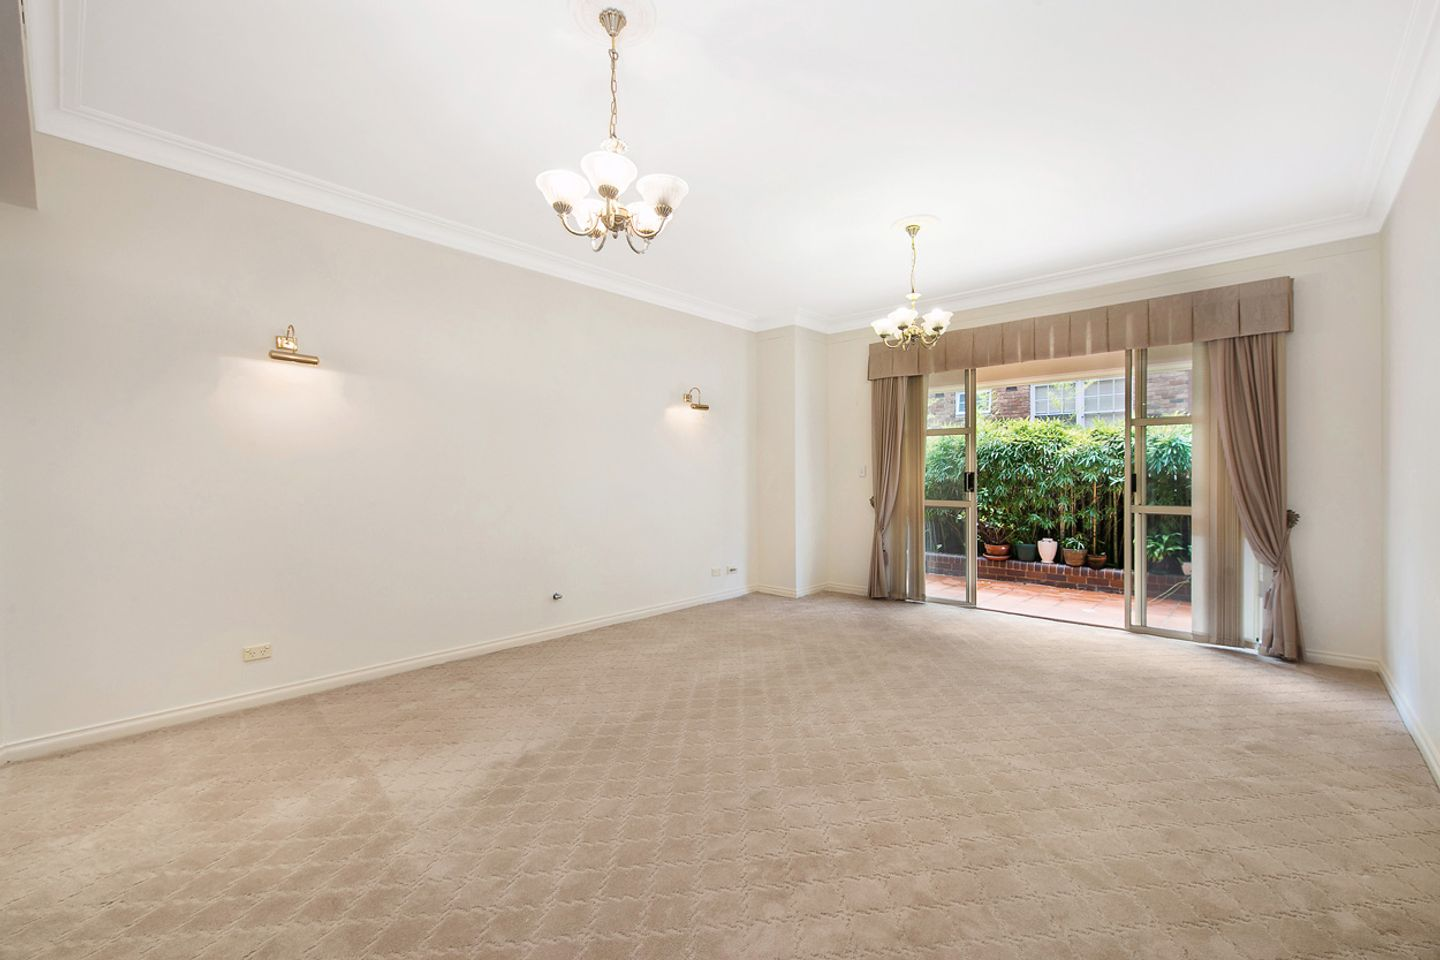 Apartment Sold - 5/1359 Pacific Highway, Warrawee